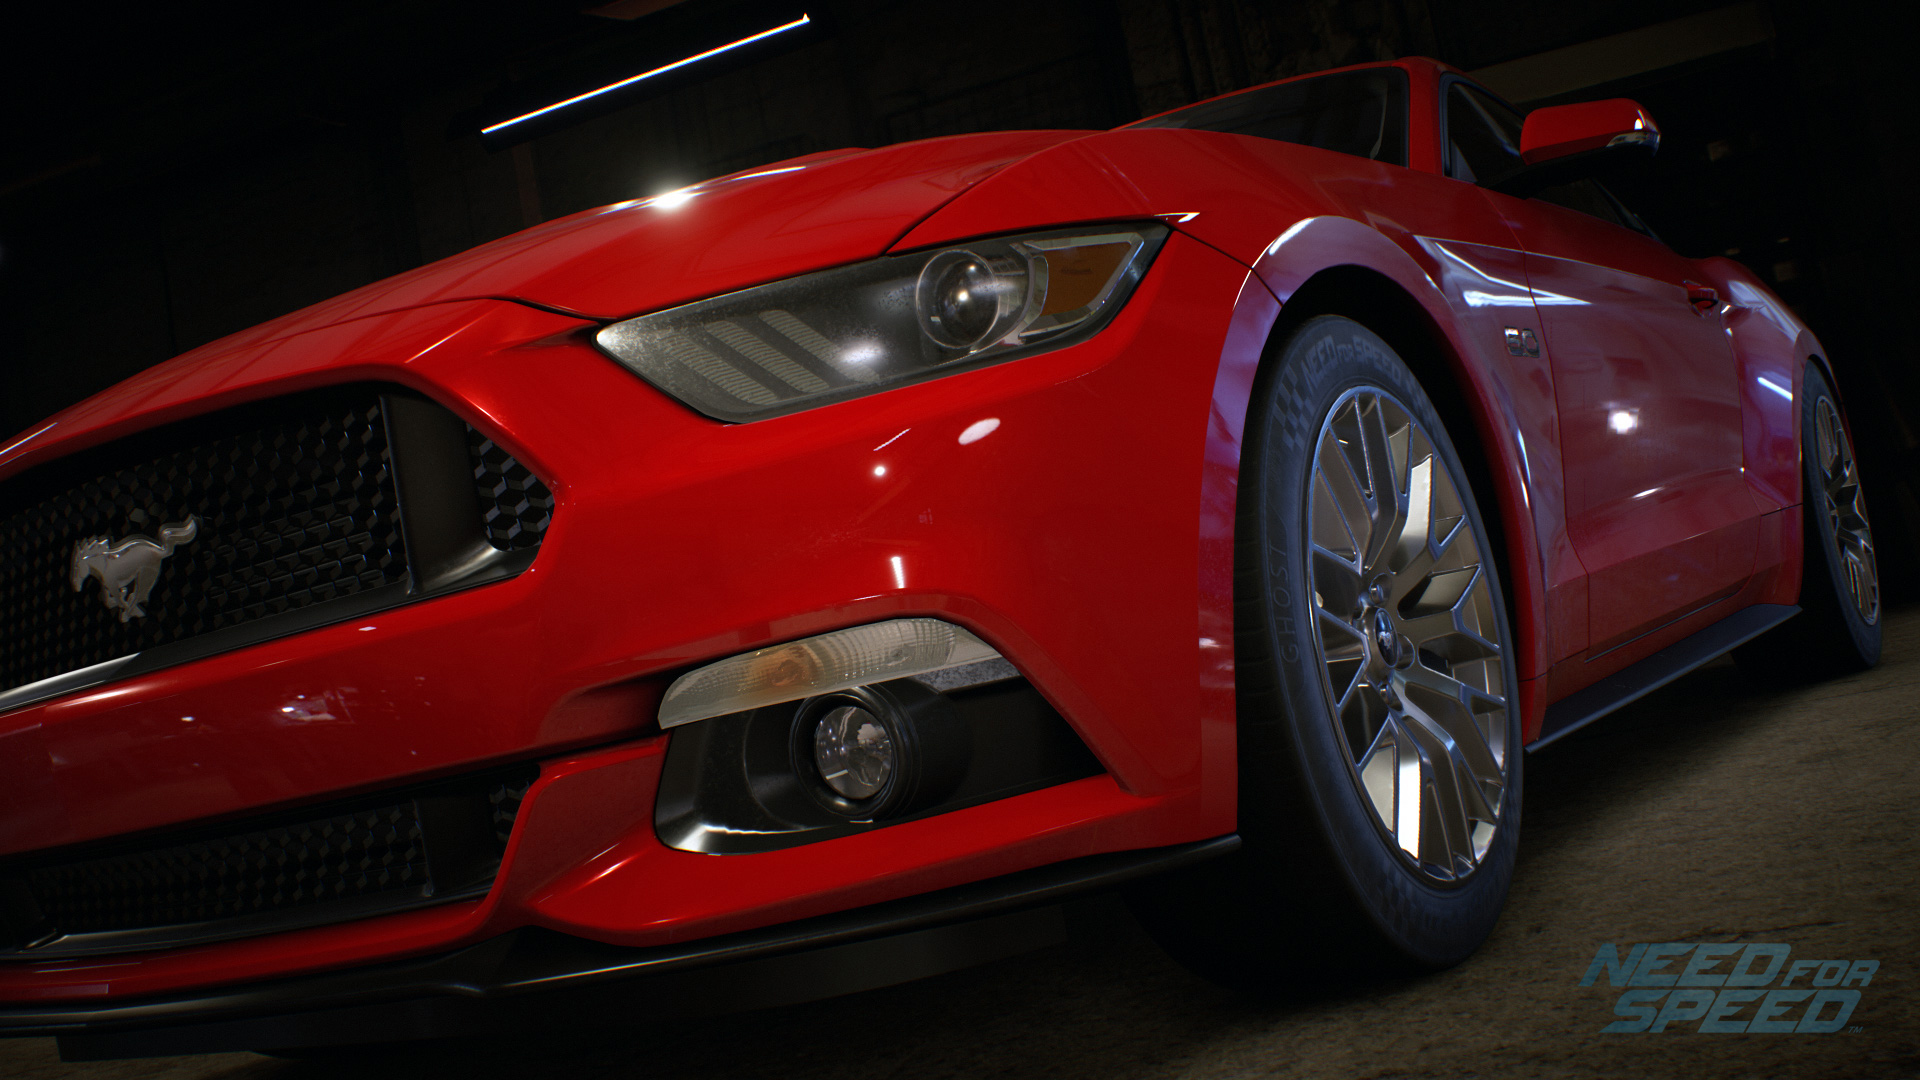 2015 Ford Mustang Gt Hd Wallpaper Background Image 1920x1080